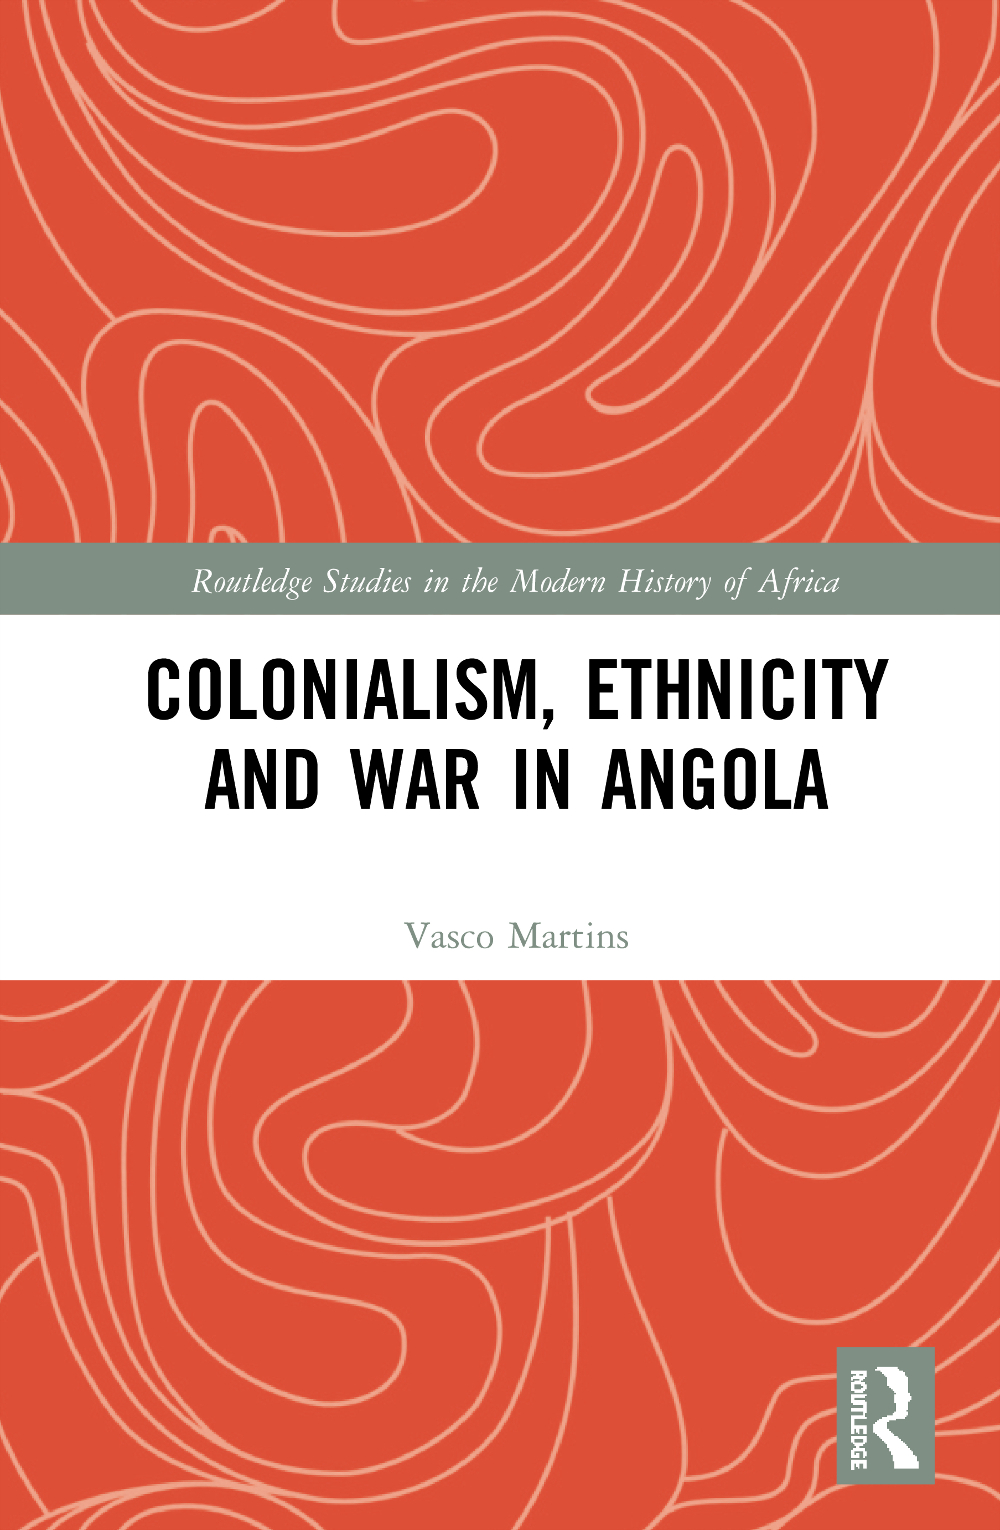 «Colonialism, Ethnicity and War in Angola» by Vasco Martins